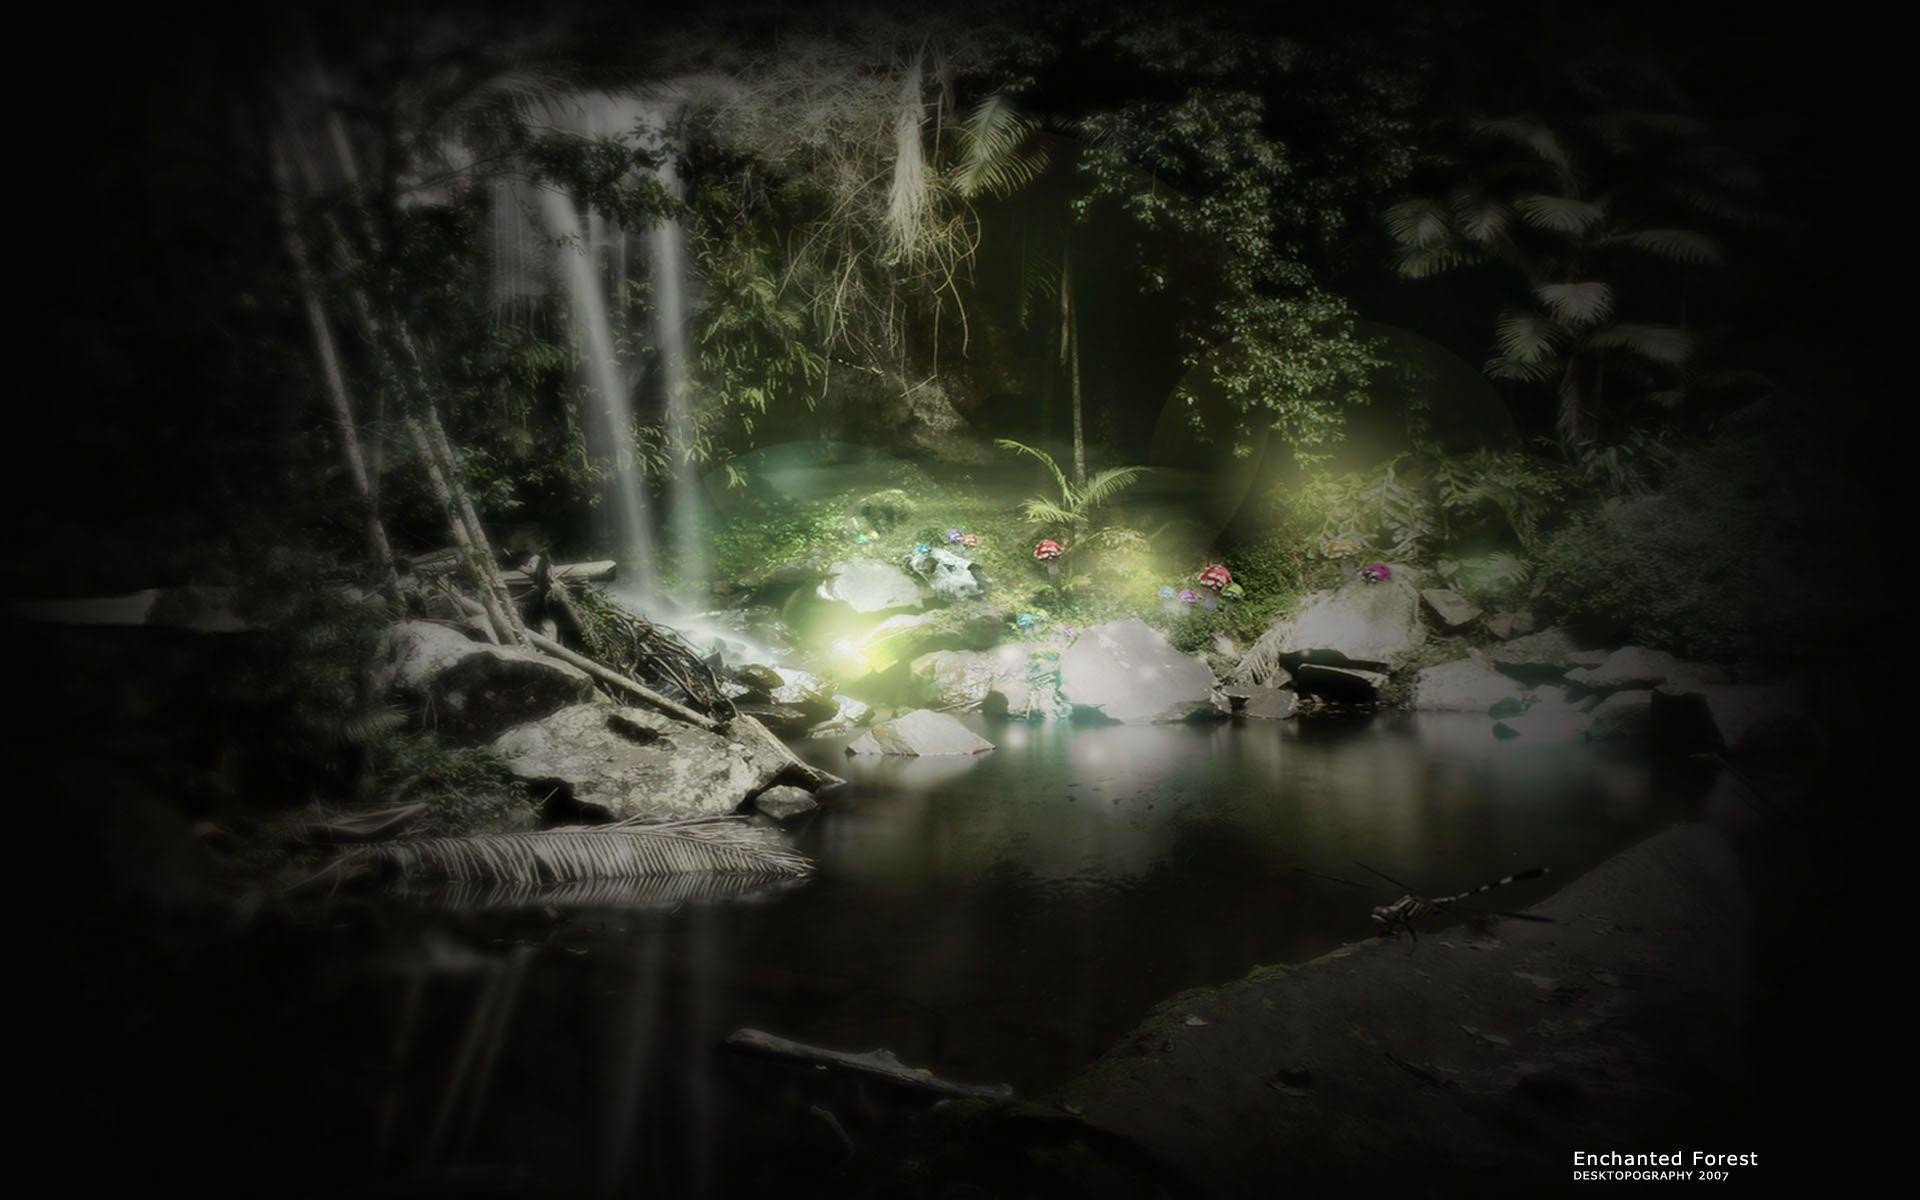 Enchanted Forest Backgrounds 183 ① Wallpapertag